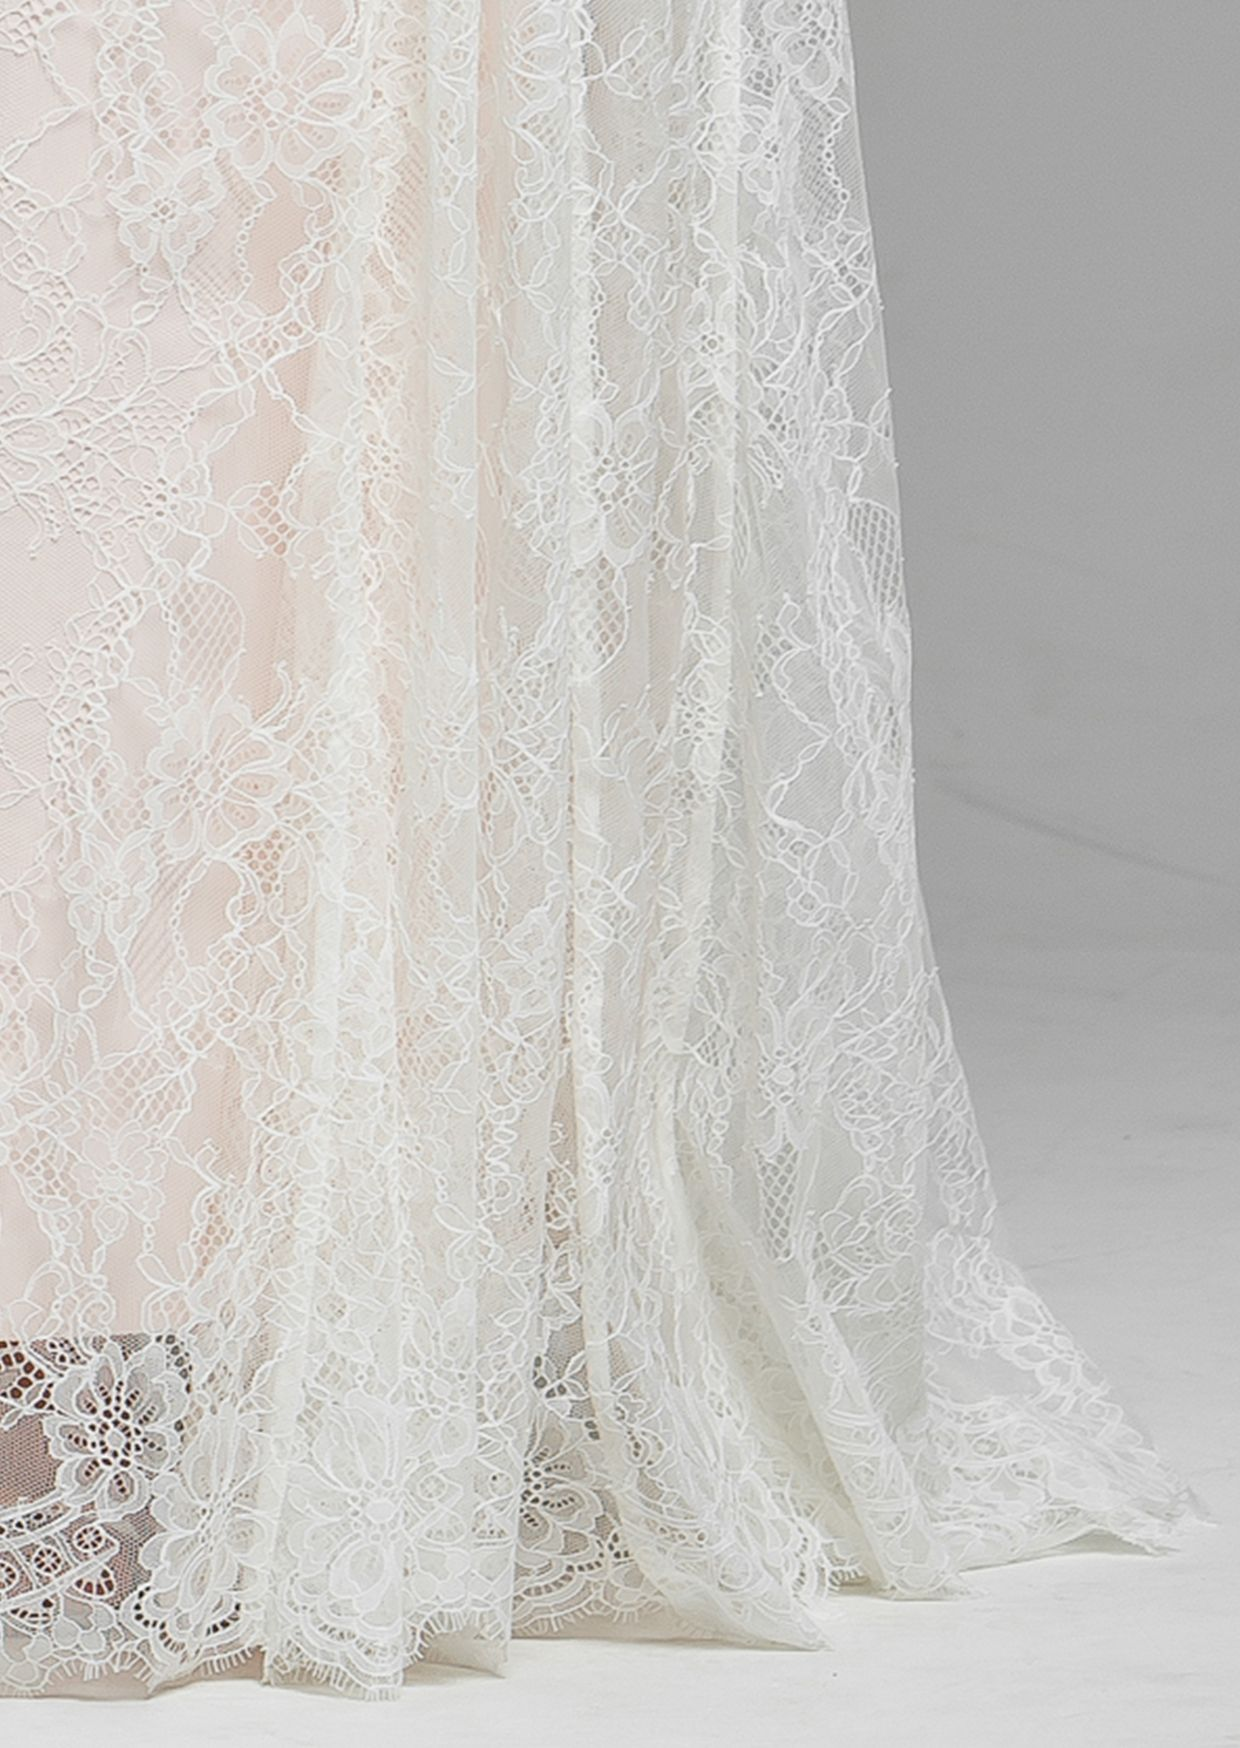 Beautifully fitted this wedding dress defines your figure. Using only the finest French & Italian lace.